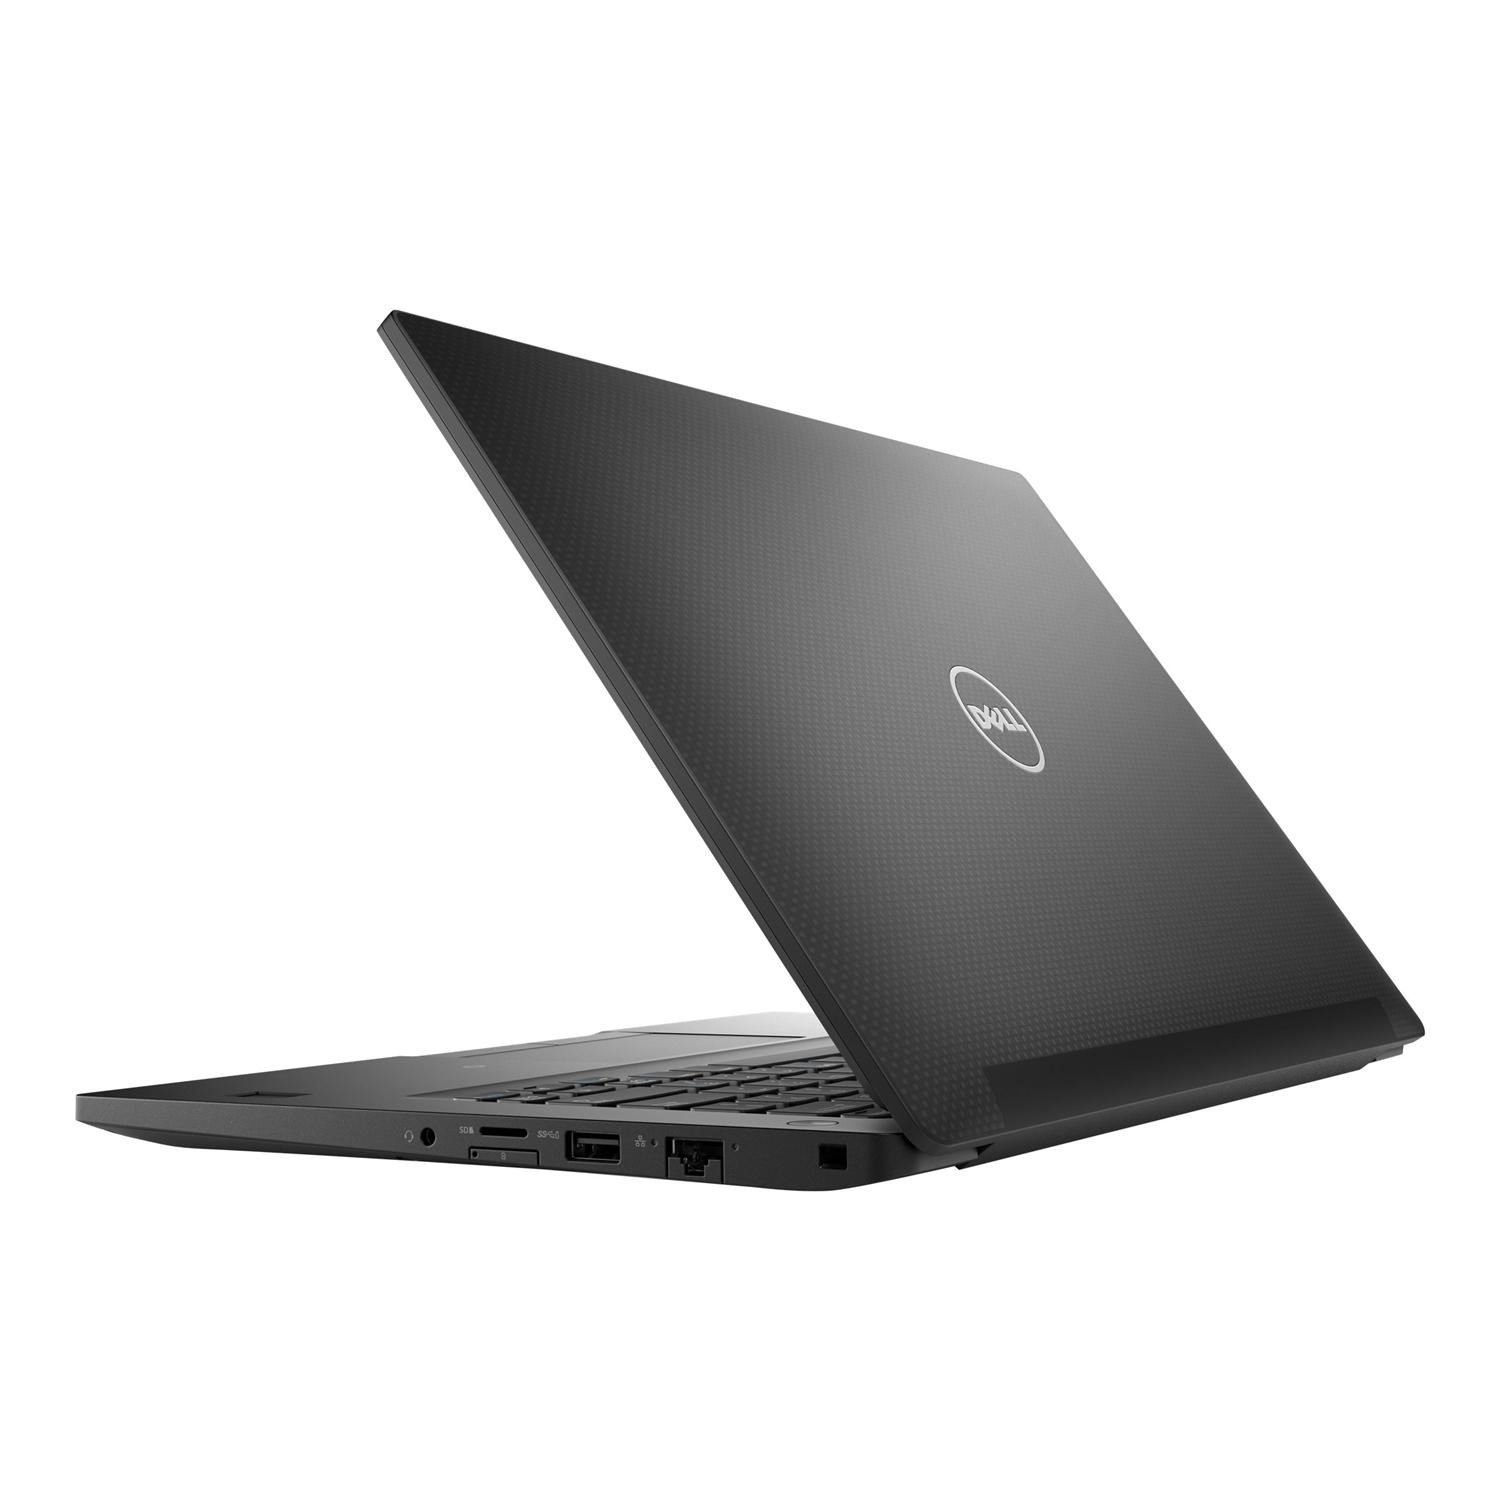 Dell Latitude 7280 Core i7-7600U 8GB 256GB SSD 12 5 Inch